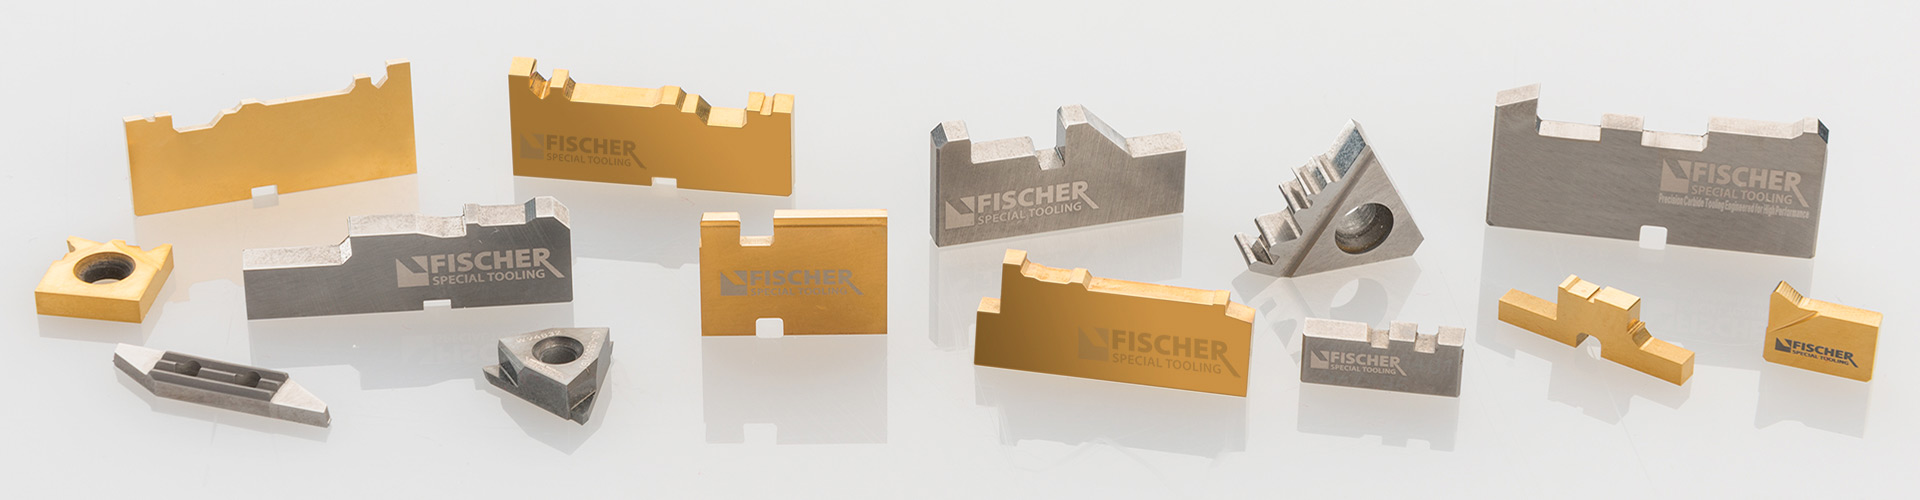 Form Cutting Tools from Fischer Special Tooling